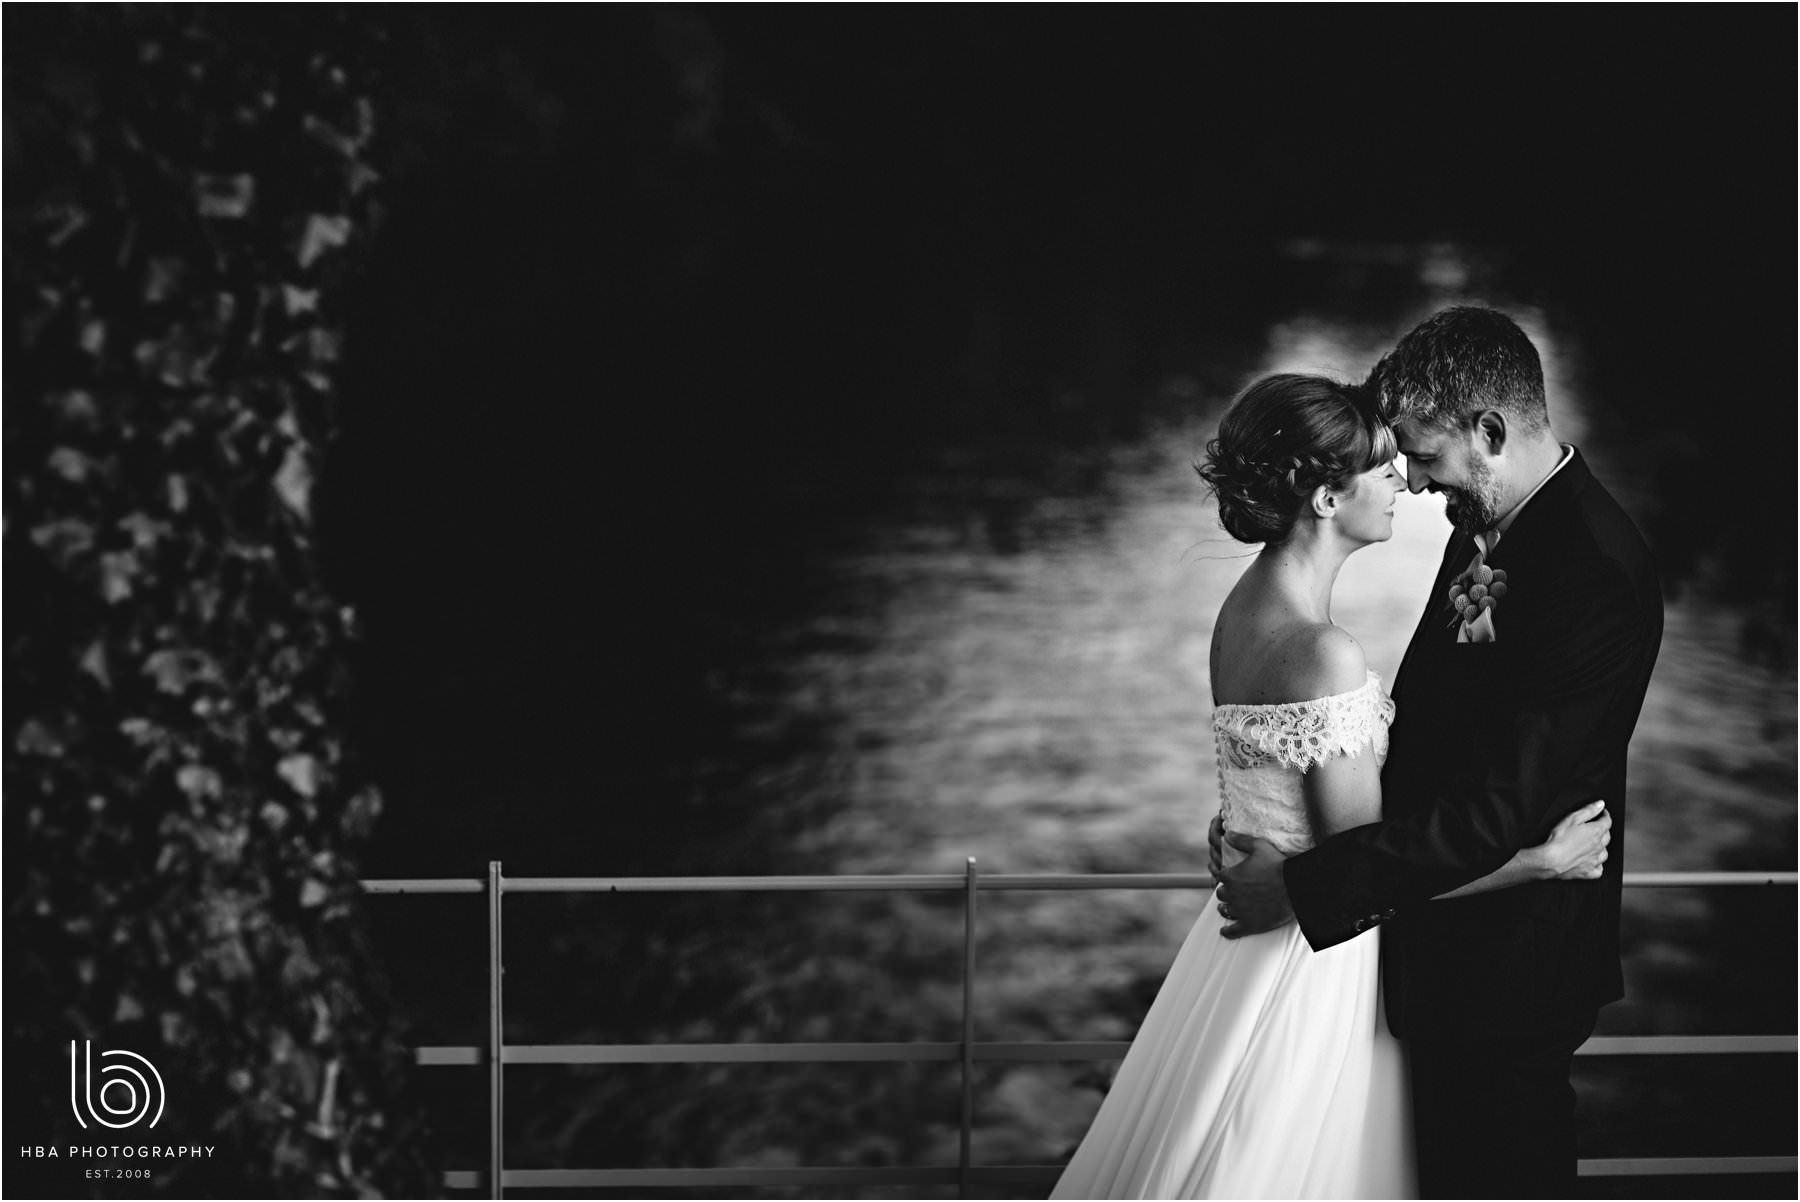 The bride & groom together by the river